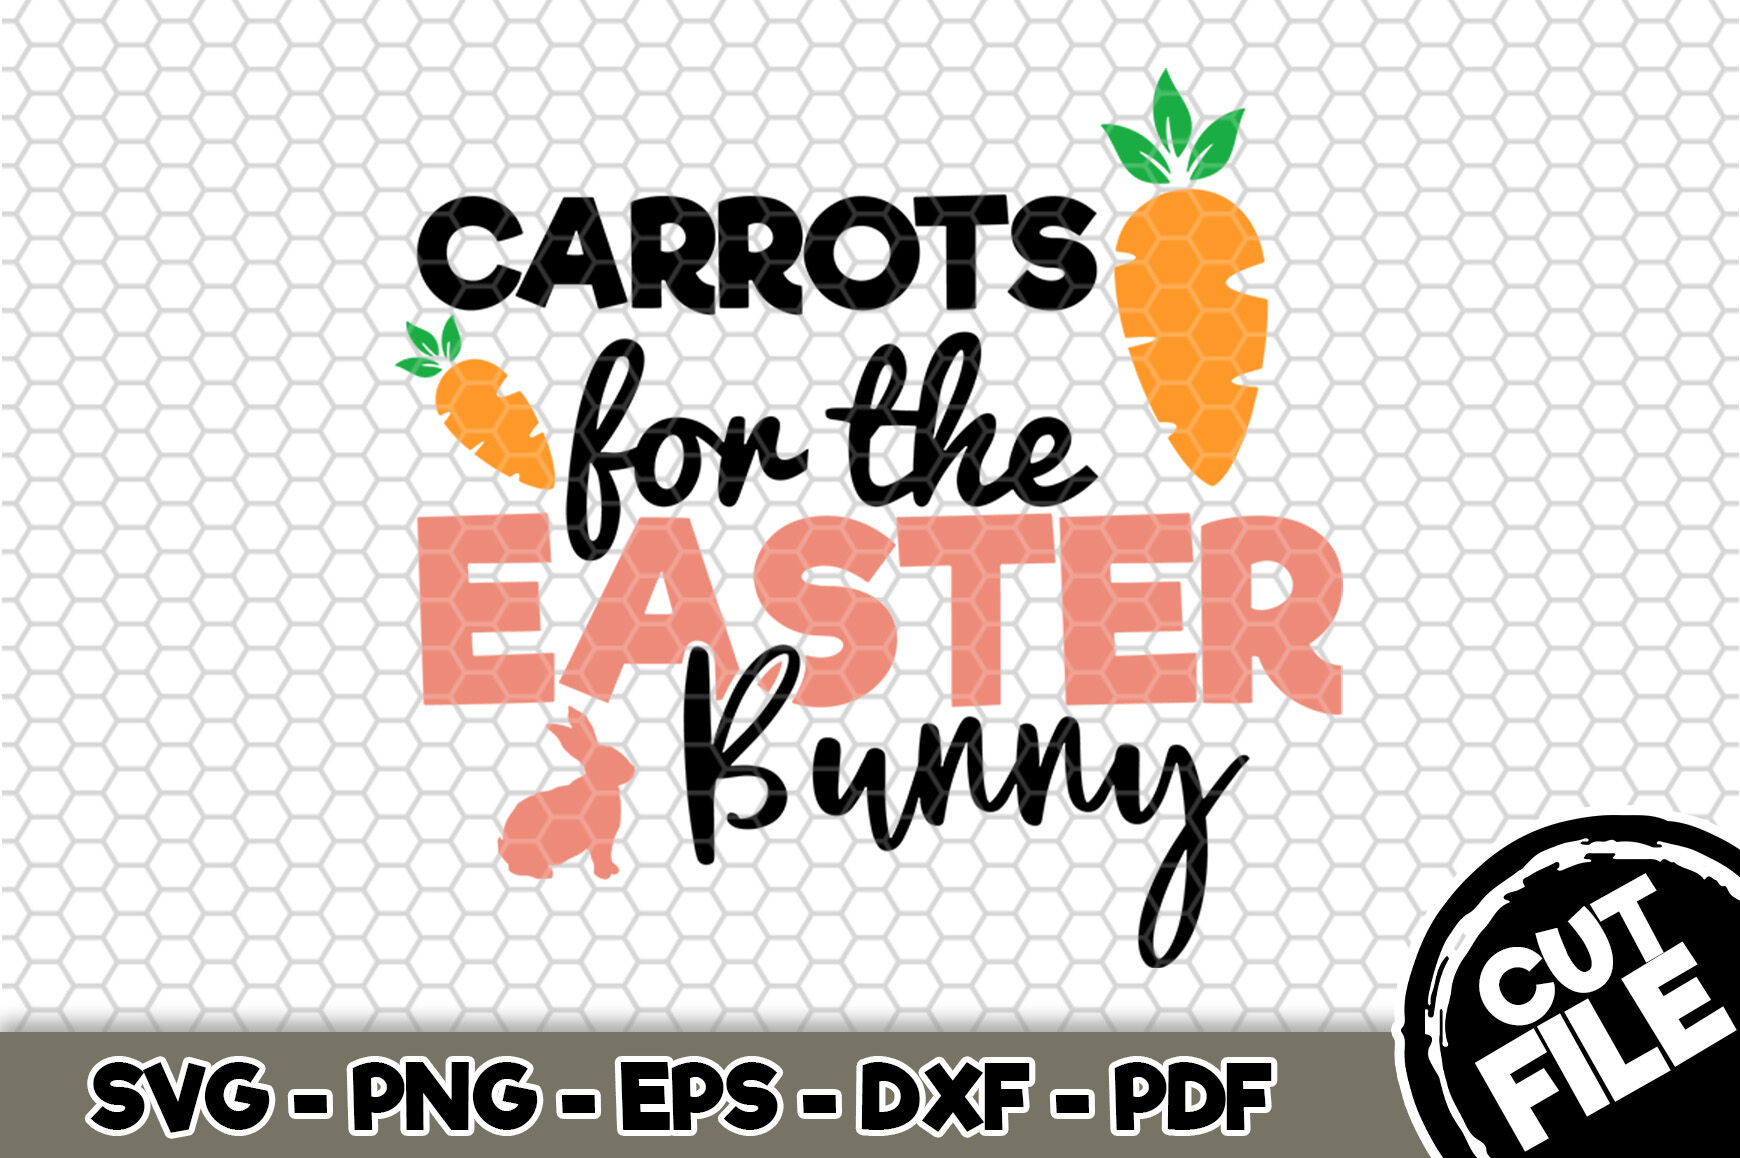 Carrots For The Easter Bunny Svg Cut File N182 By Svgartsy Thehungryjpeg Com